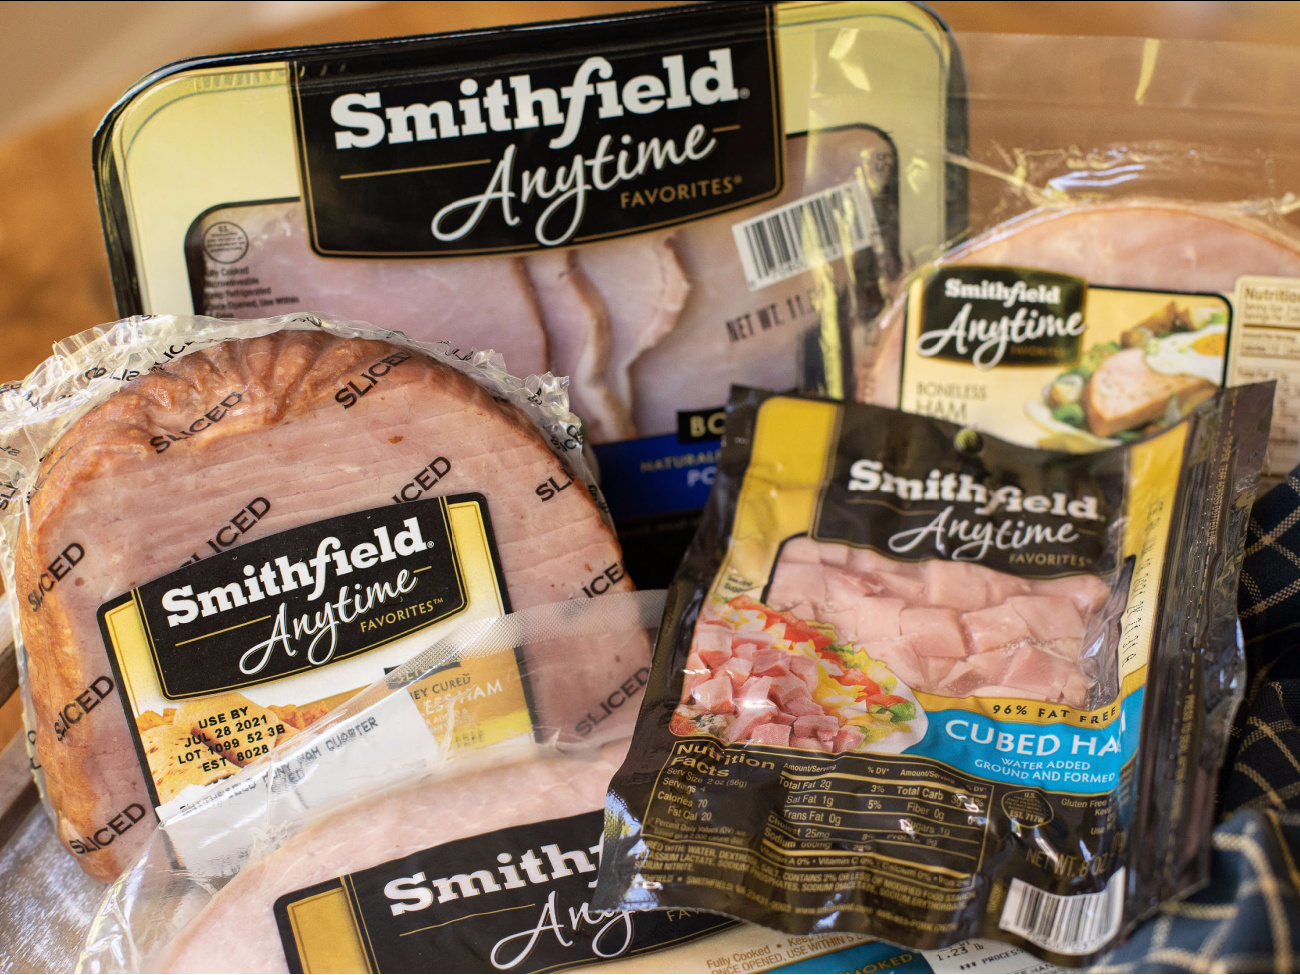 Don't Miss The Chance To Save On Your Favorite Smithfield Anytime Favorites Product on I Heart Publix